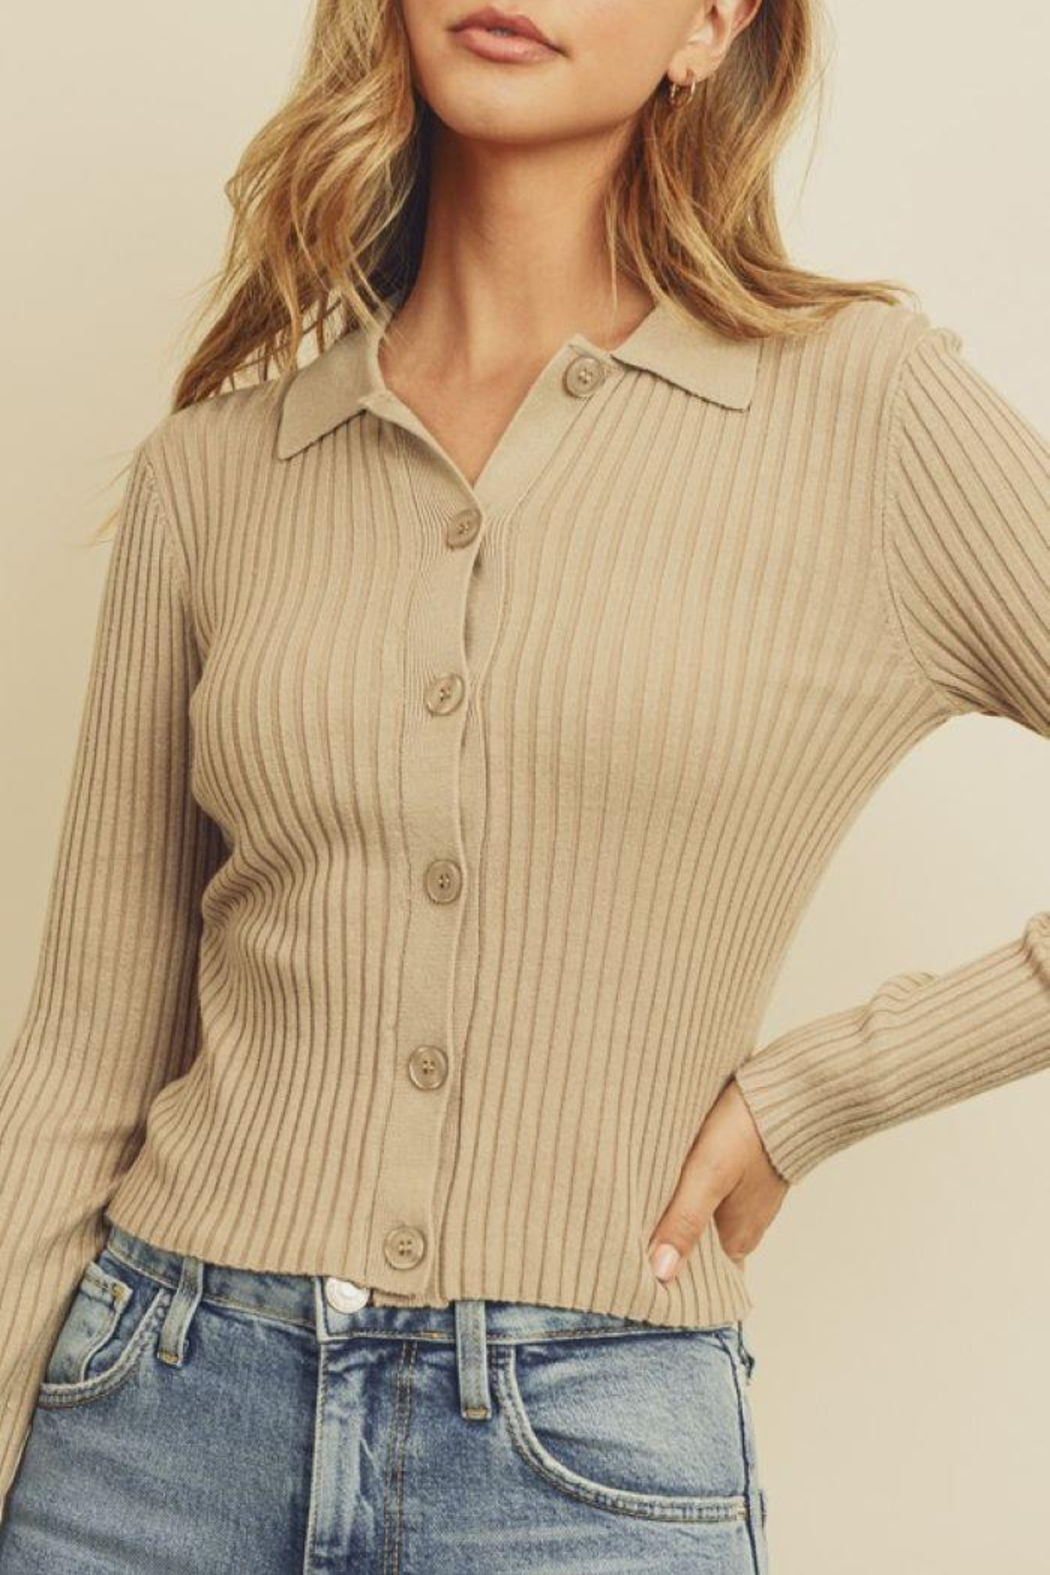 dress forum Collared Button-Down Knitted Top - Back Cropped Image